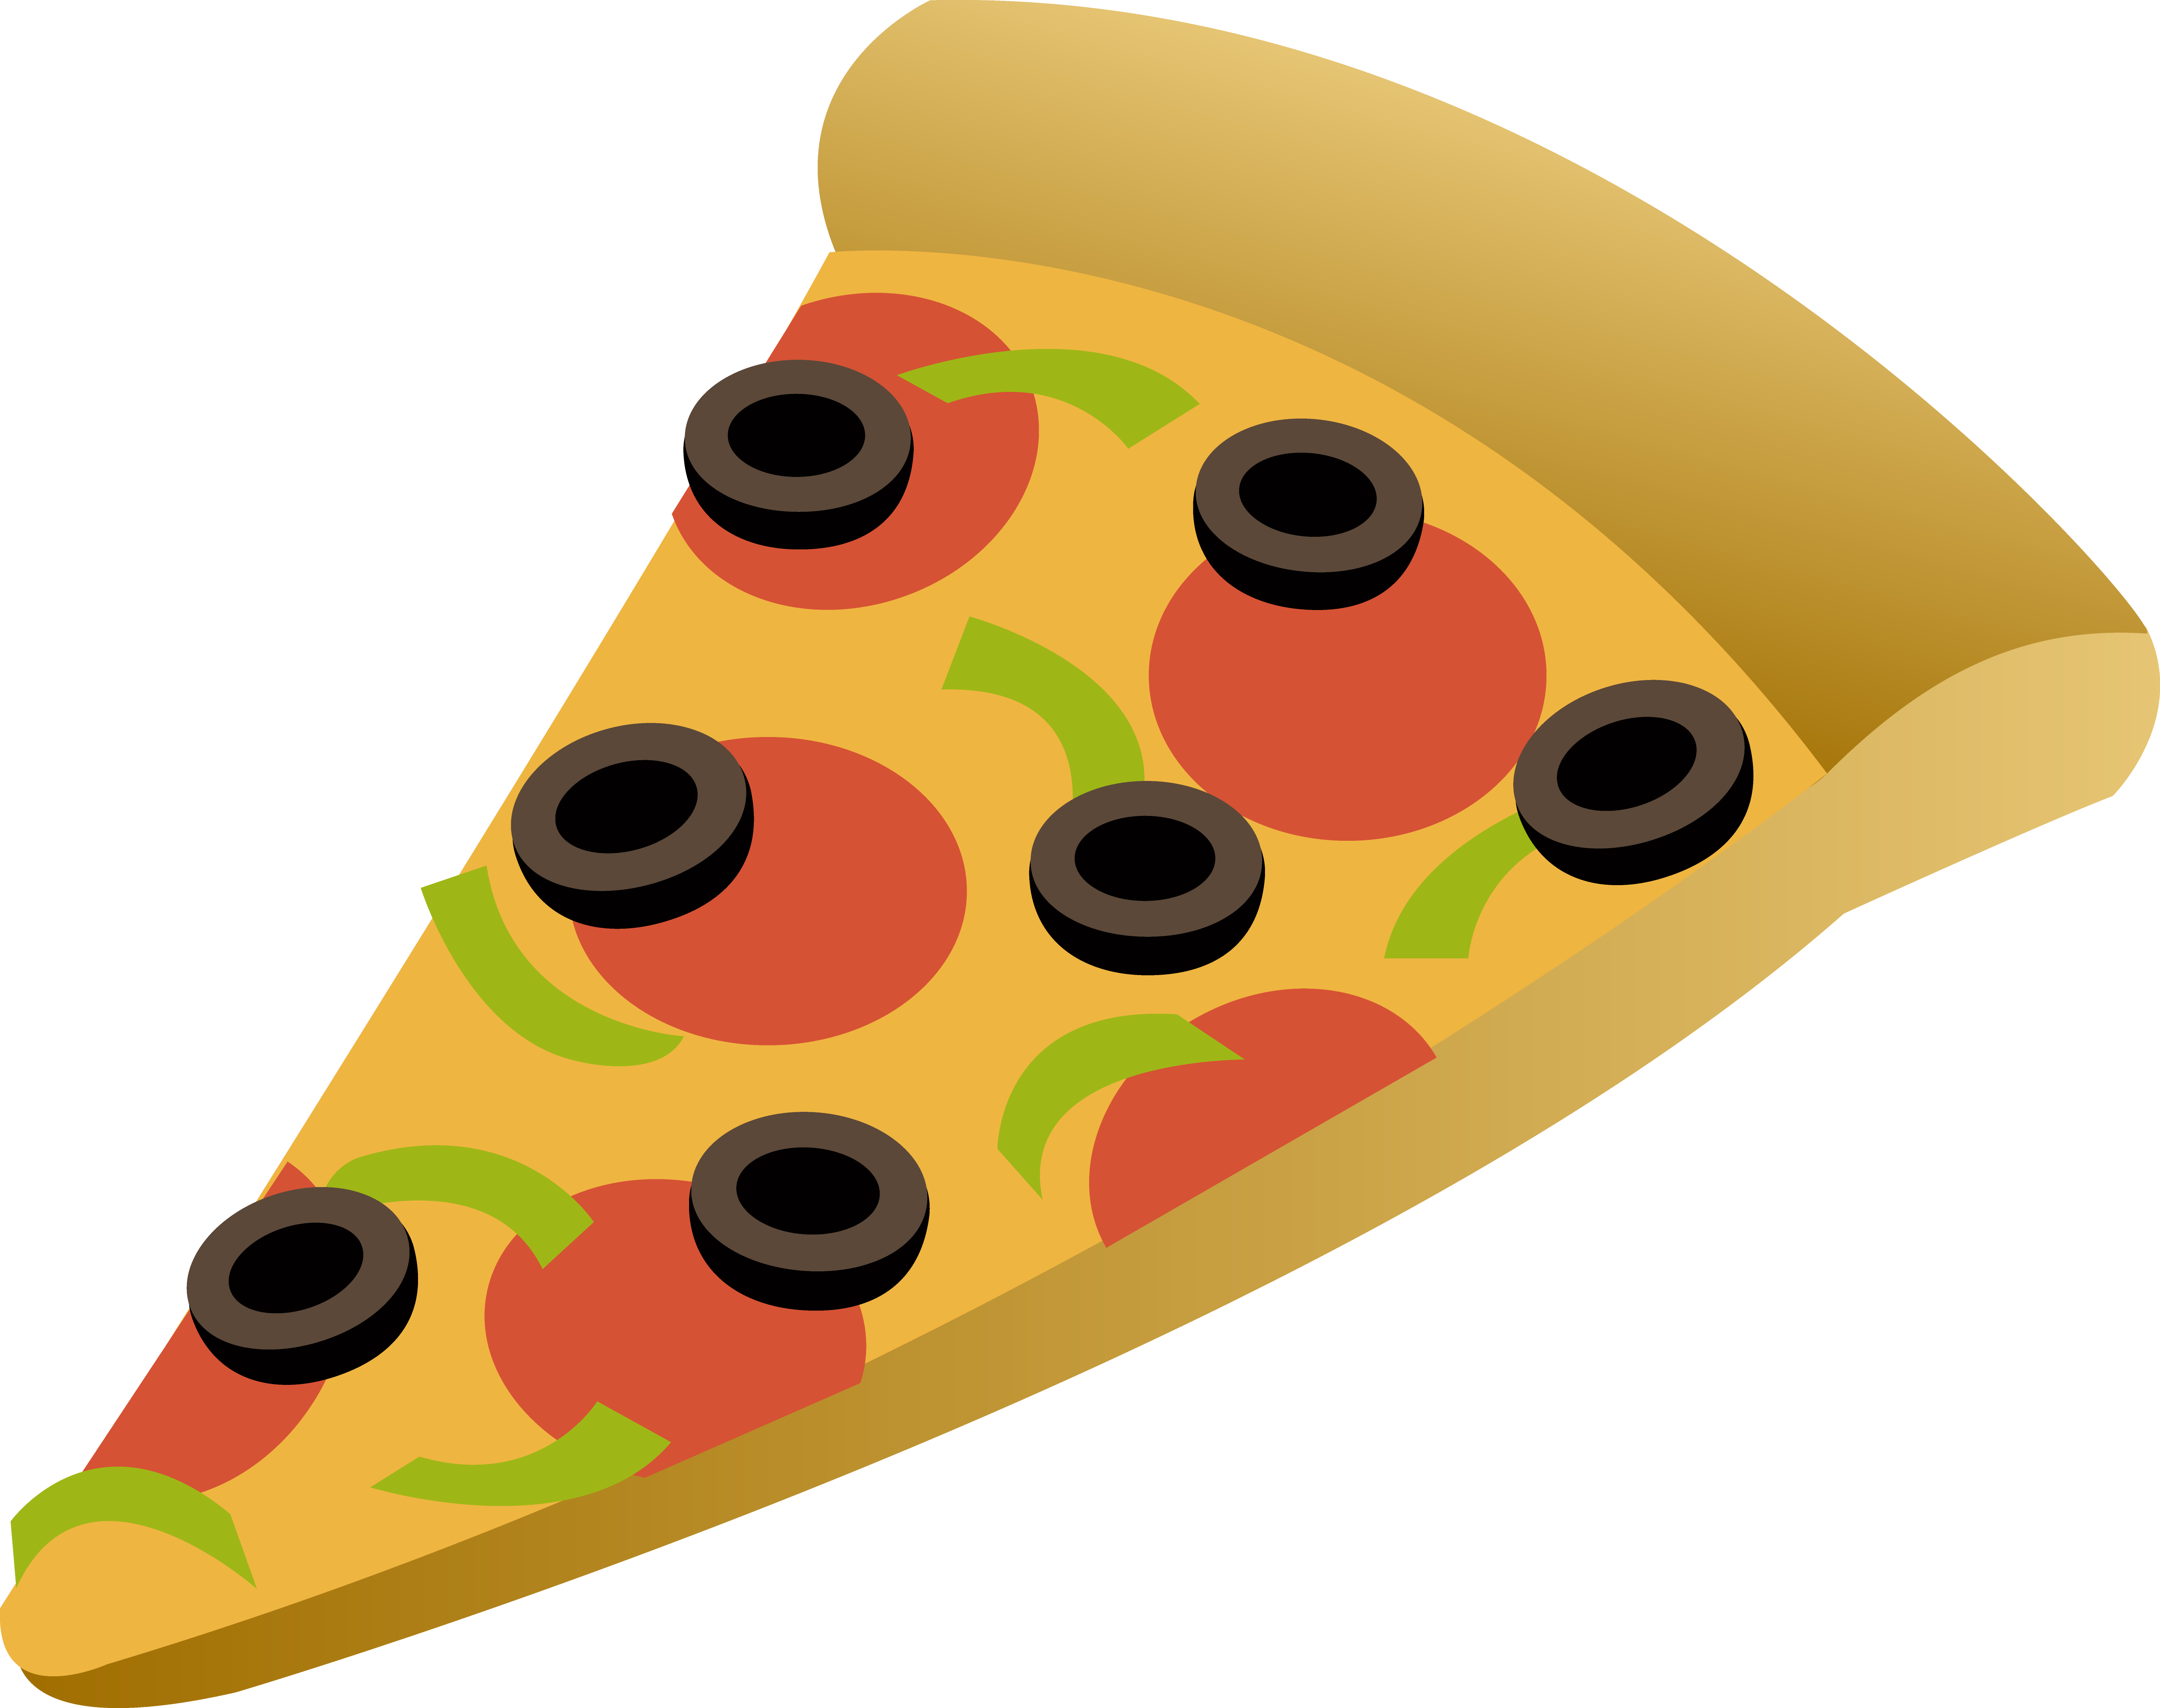 Pizza Slice Clipart | Clipart Panda - Free Clipart Images